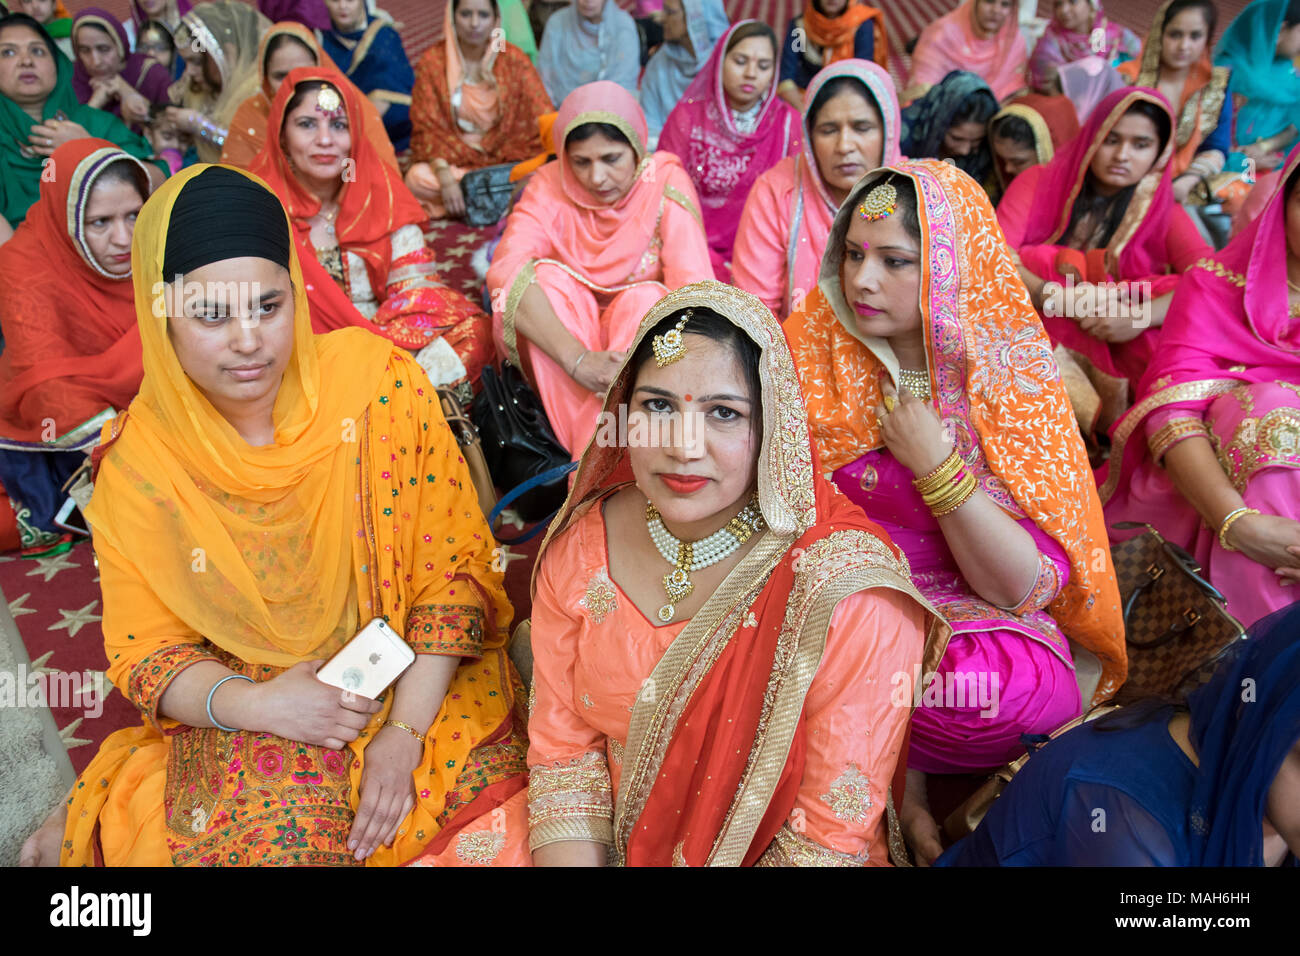 south richmond hill hindu single women Get reviews, hours, directions, coupons and more for punjabi bride inc at 11401 101st ave, south richmond hill, ny search for other bridal shops in south richmond hill on ypcom.